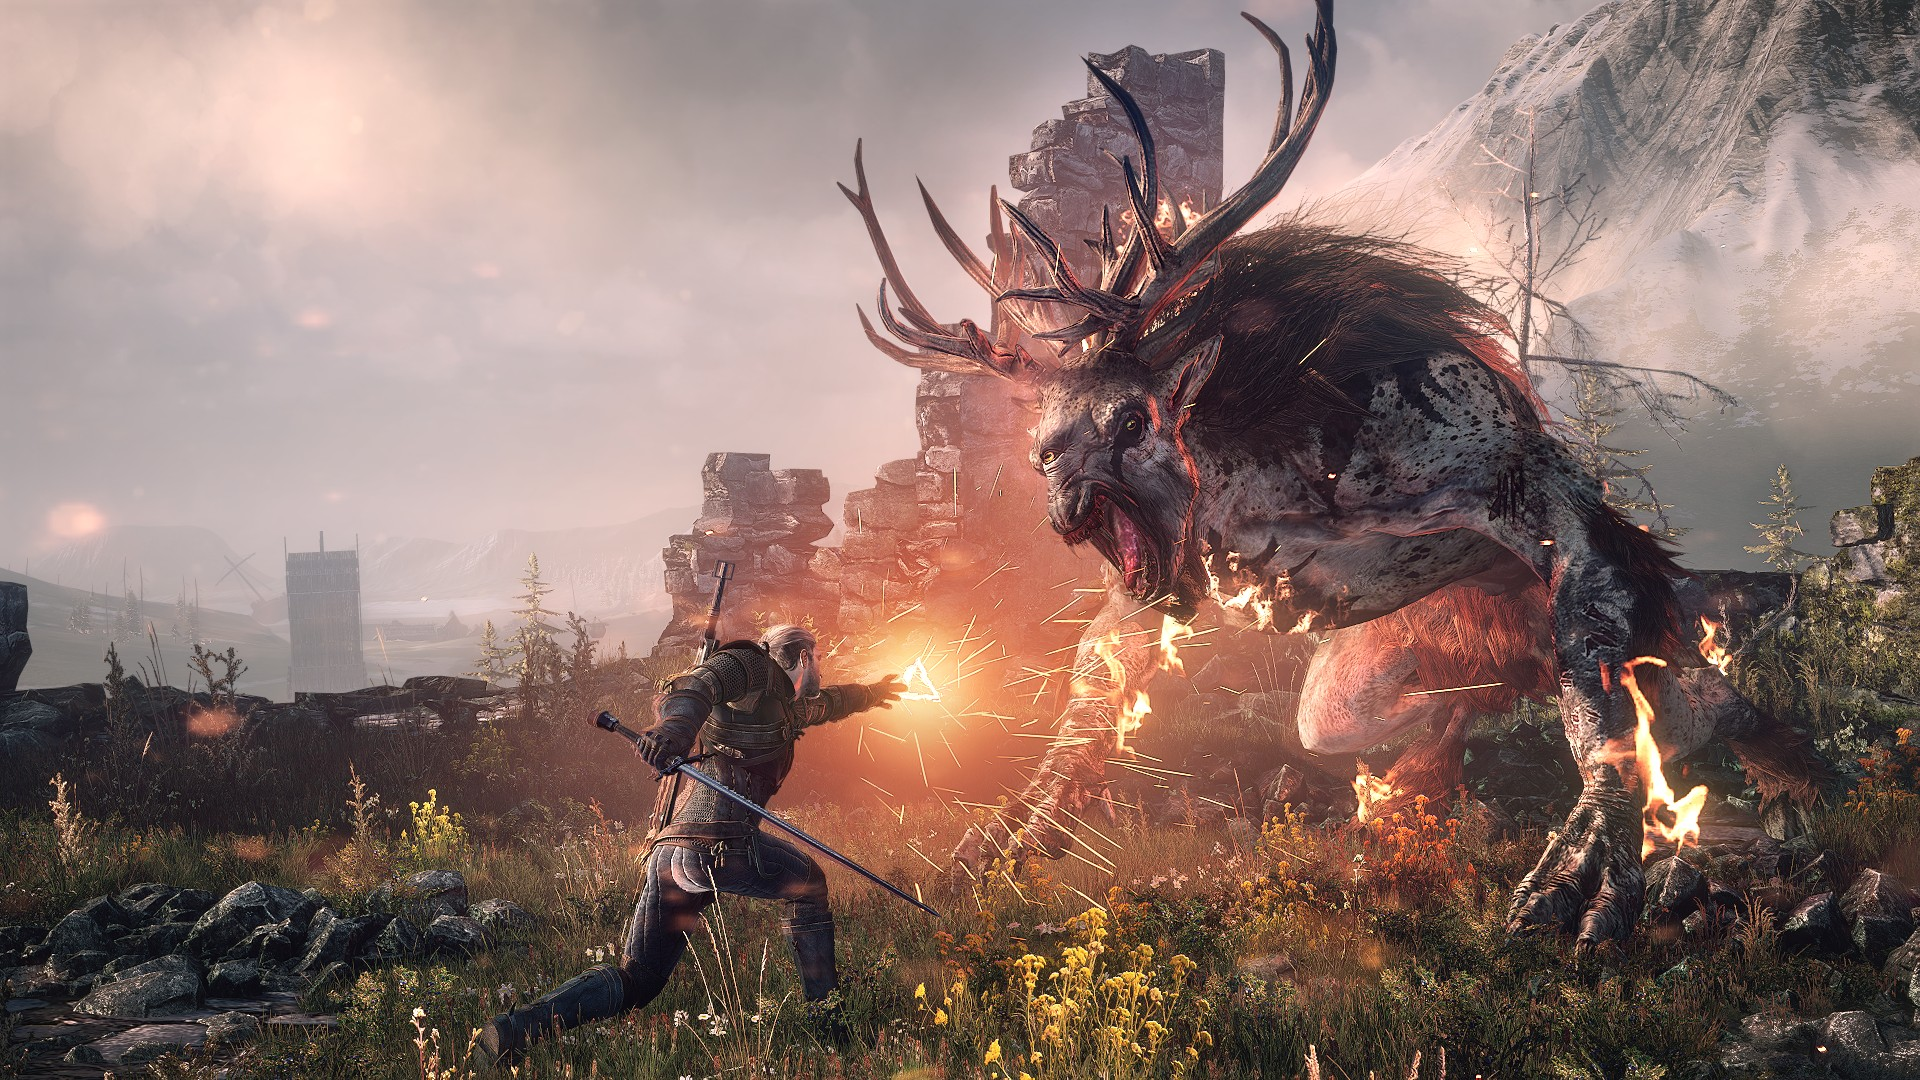 The Witcher 3 on PS5 and Xbox Series X